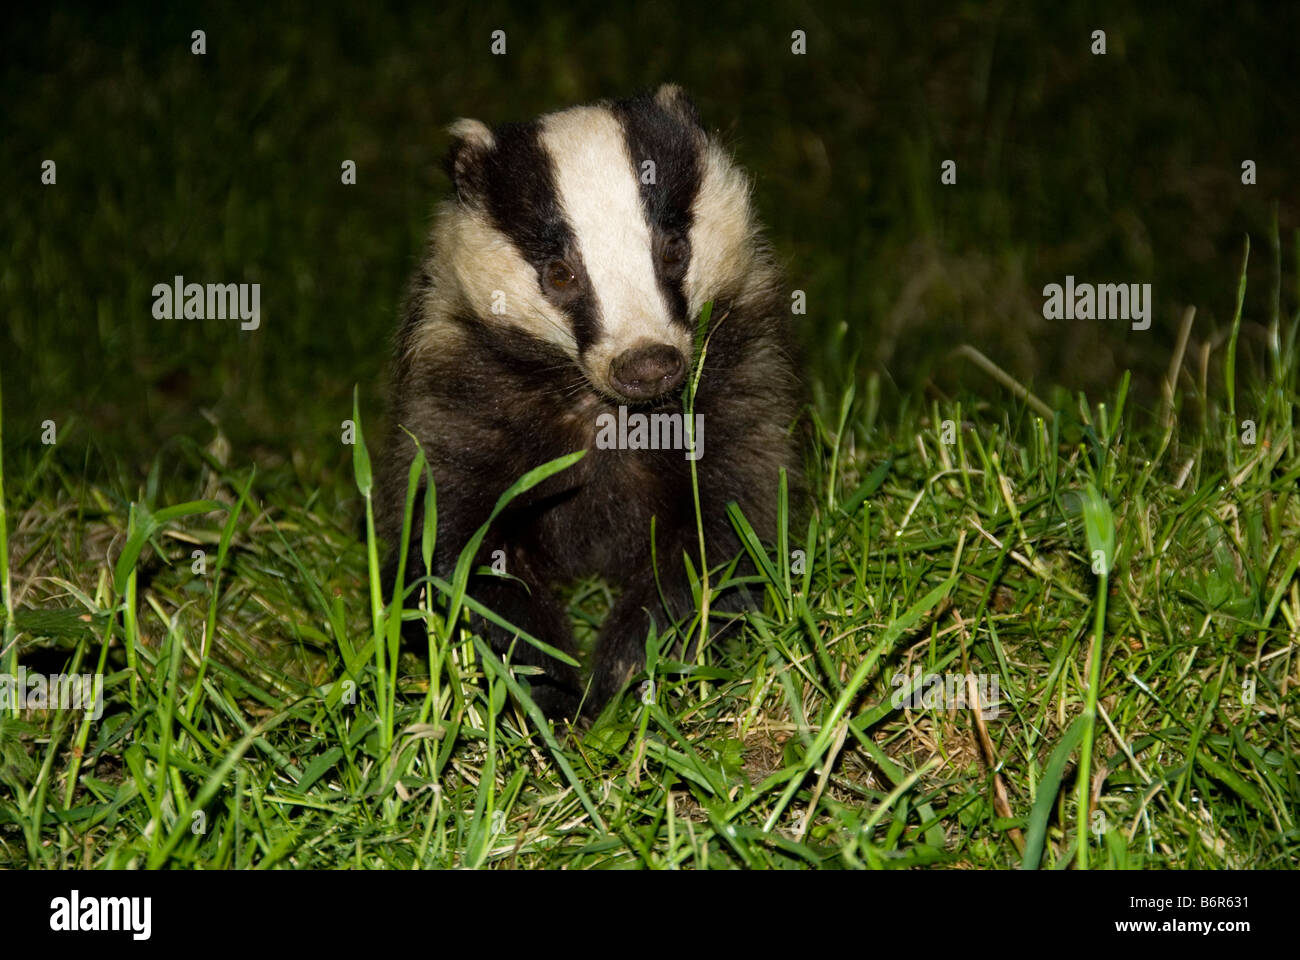 European Badger (Meles meles) On a nature Reserve in the Herefordshire countryside - Stock Image